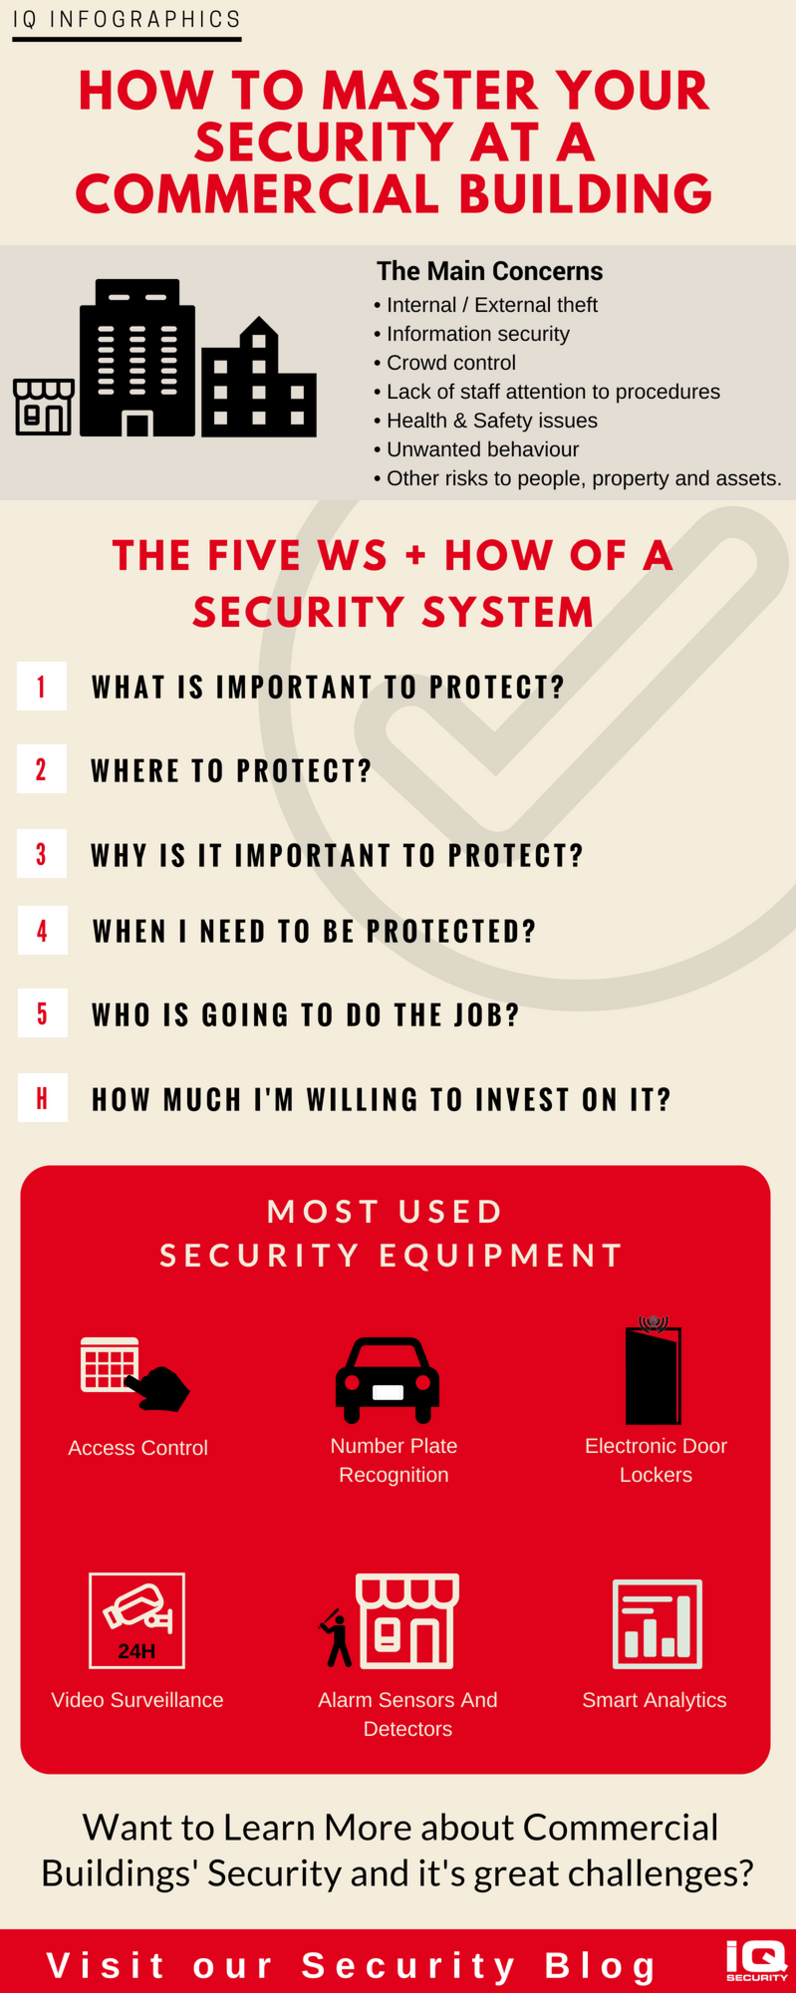 IQ Infographics Commercial Building Security Tips